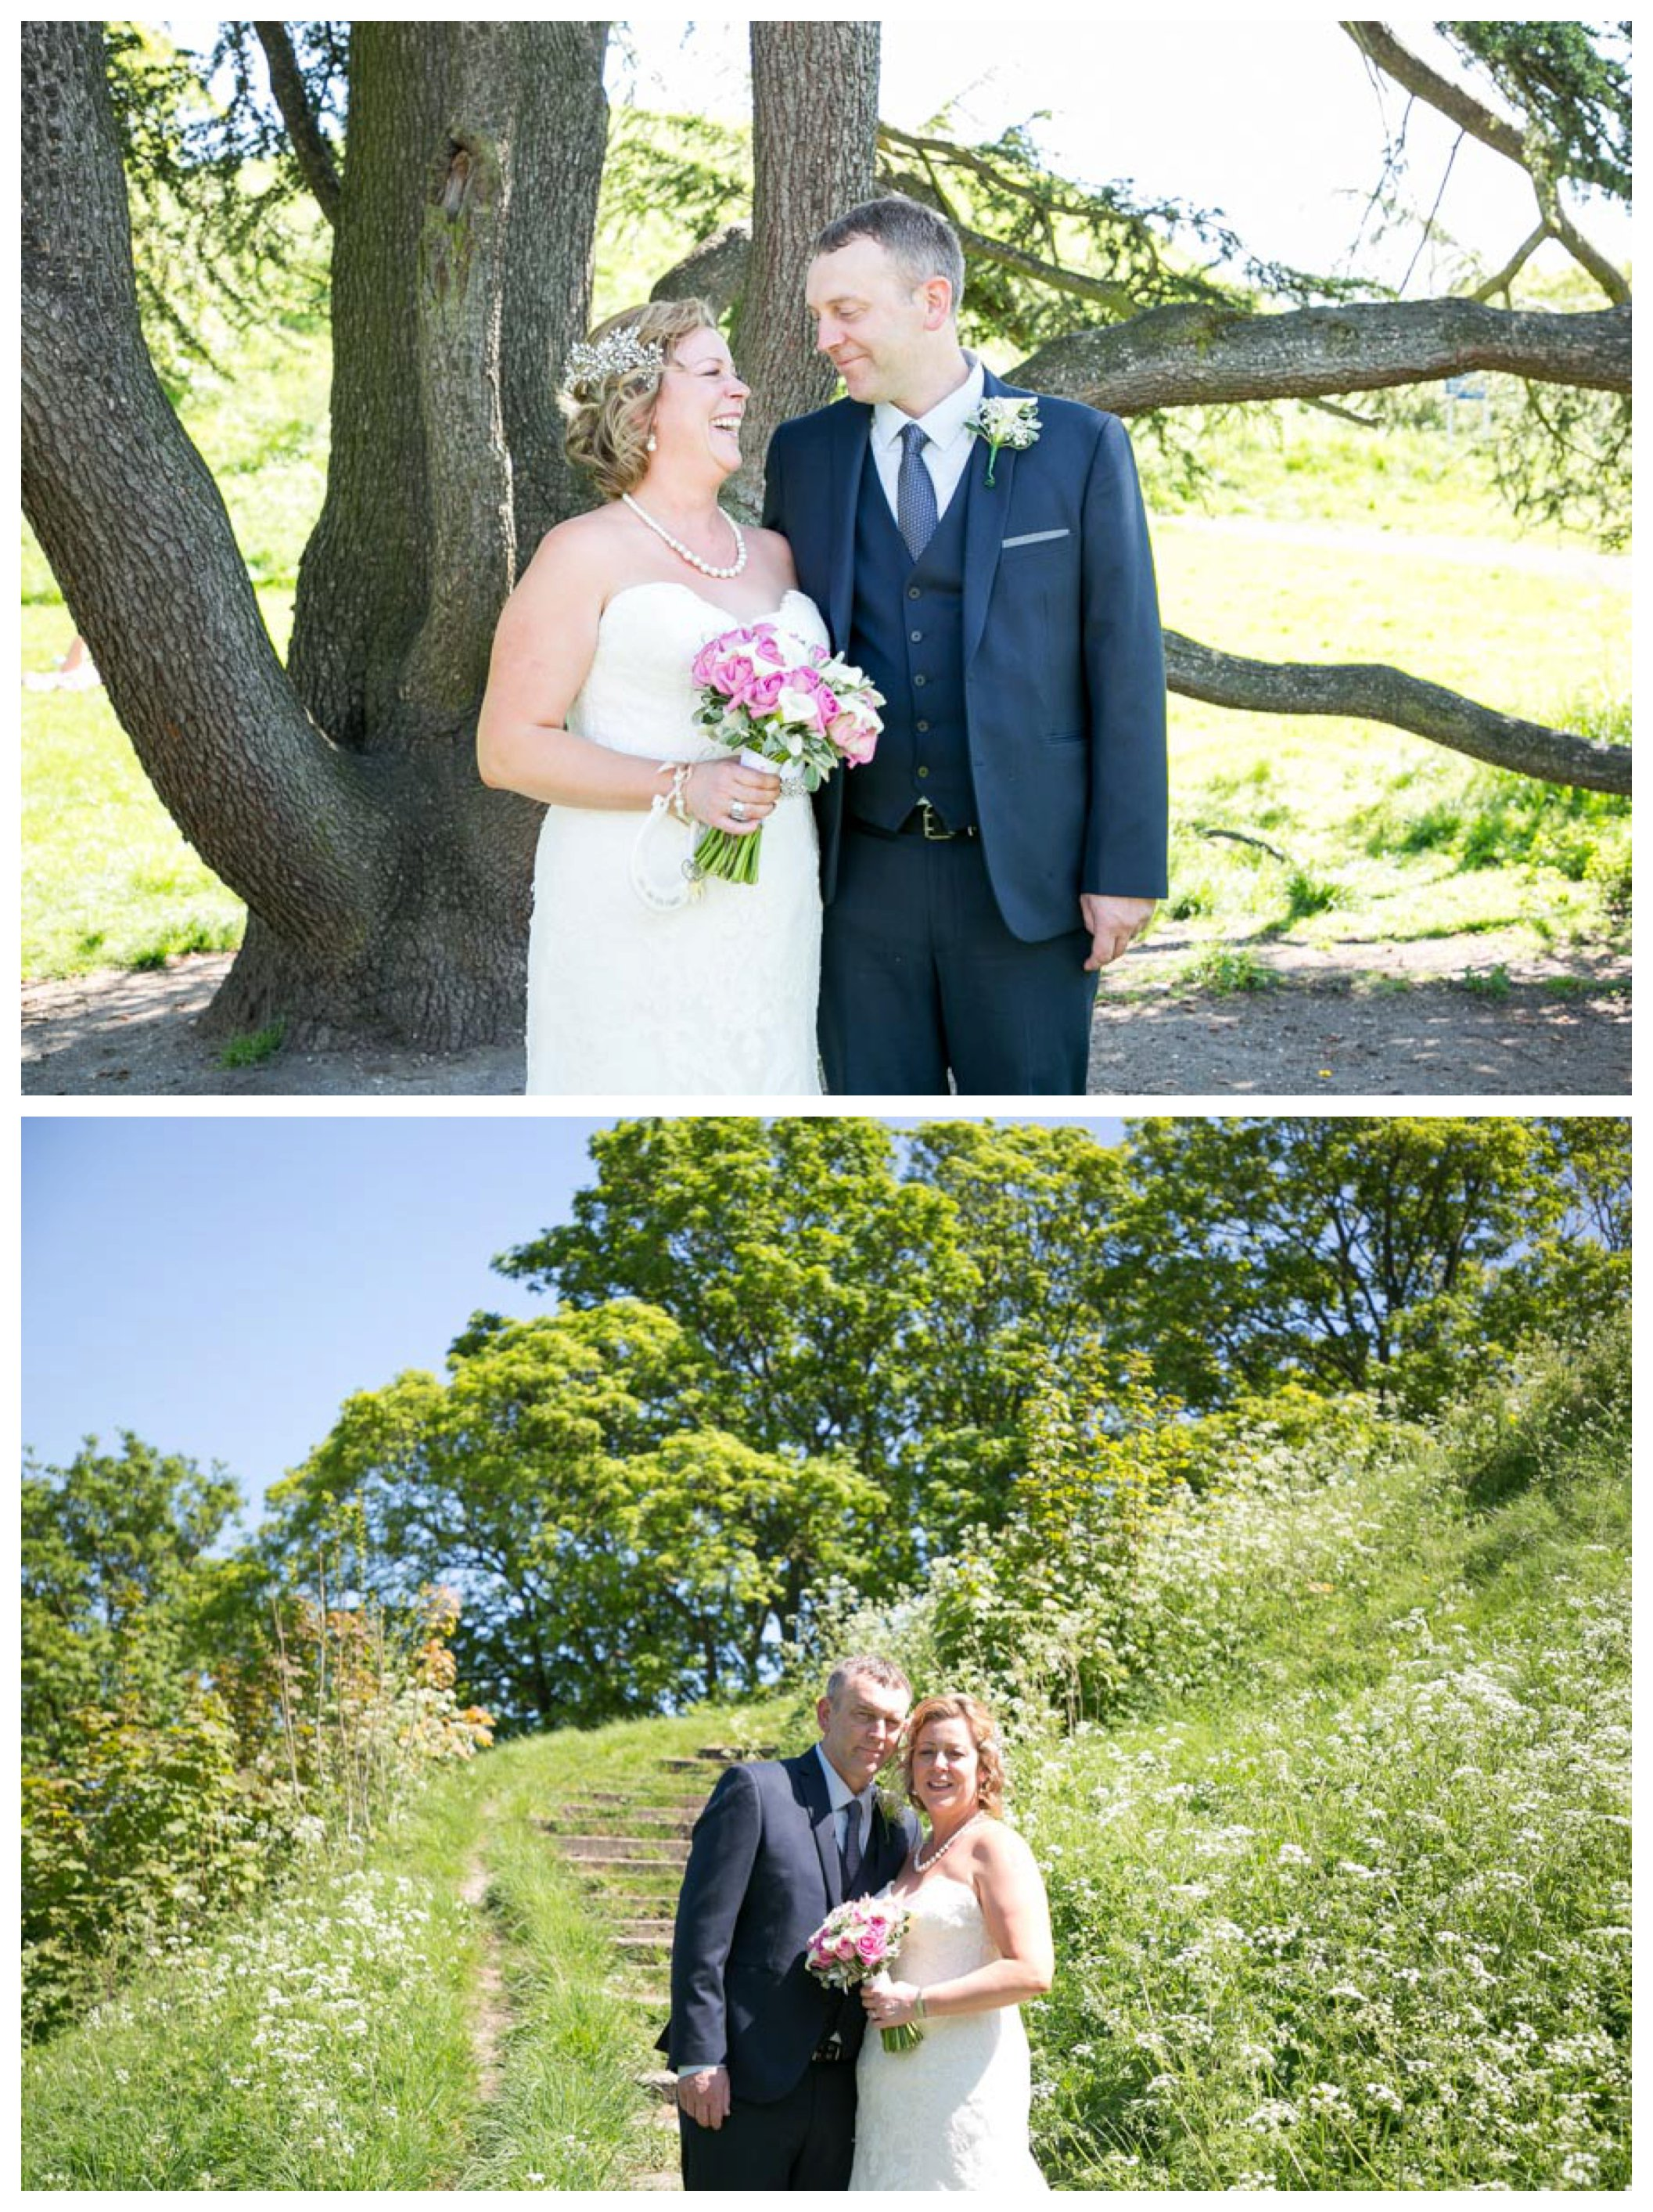 just married couple infront of tree and grass at Cambridge wedding